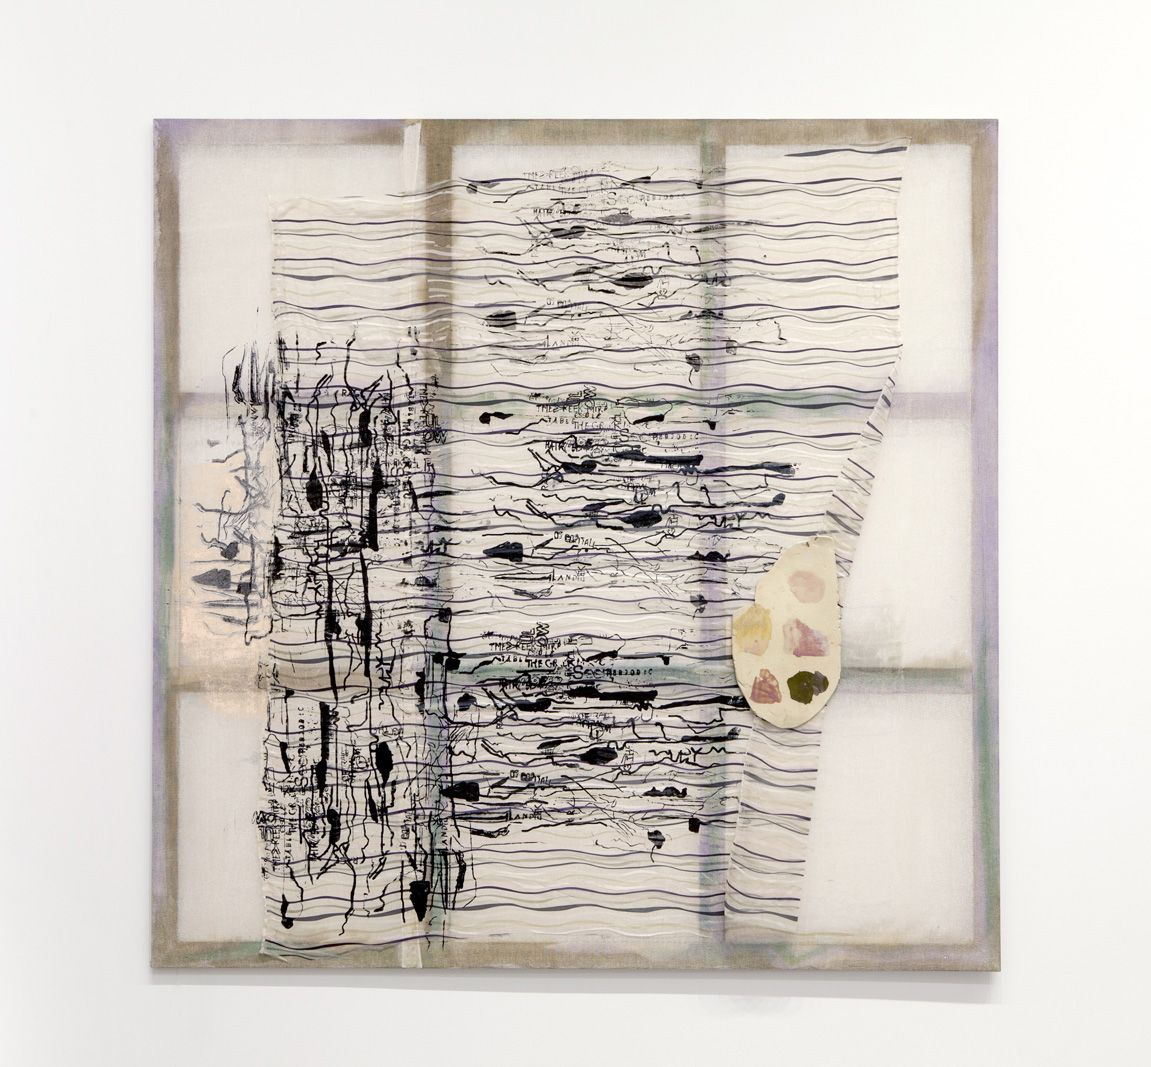 a silkscreen artwork by jessica jackson hutchins of calligraphy or musical notations